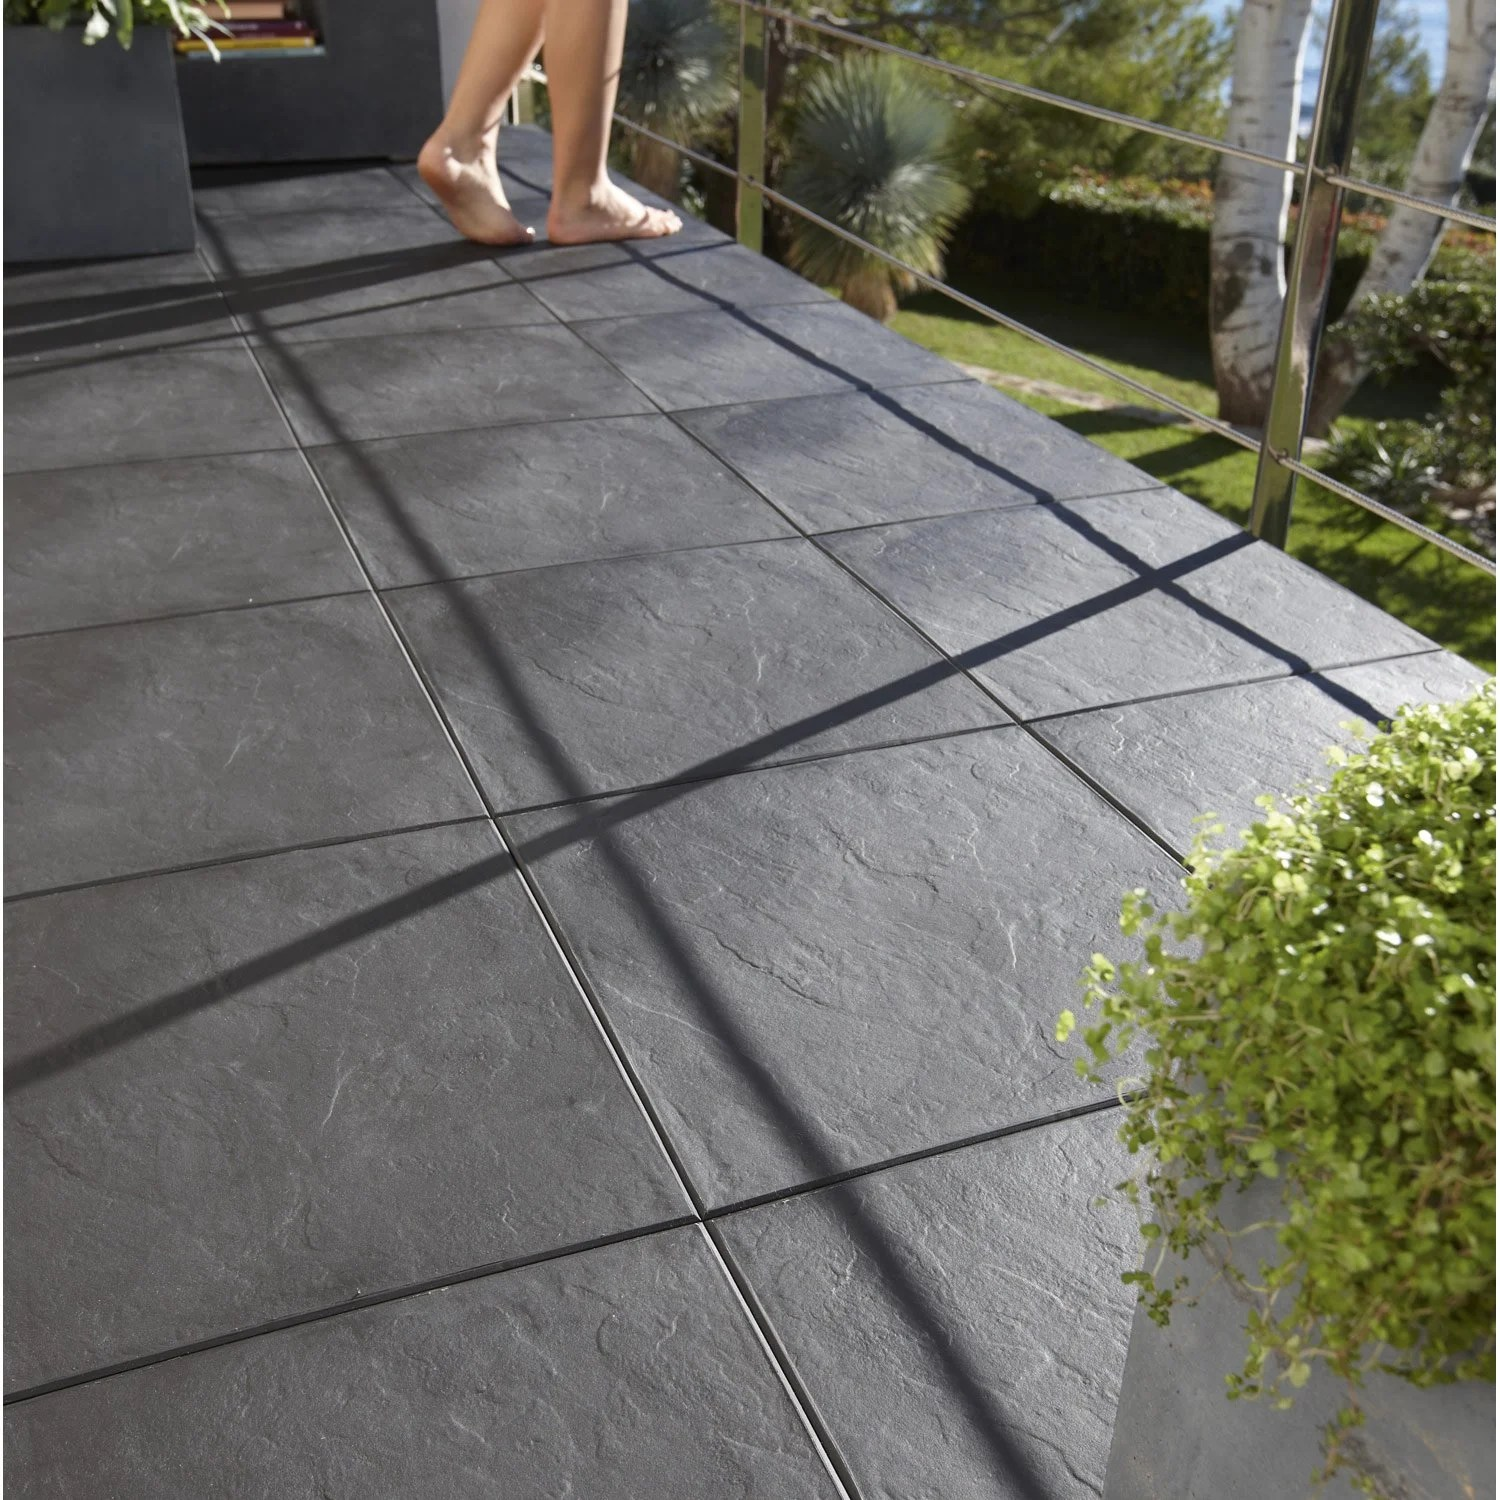 Dalles Terrasse Exterieur Ardoise Dalle Clipsable Polypropylène Easy Aspect Ardoise L 38 X L 38 Cm X Ep 25 Mm